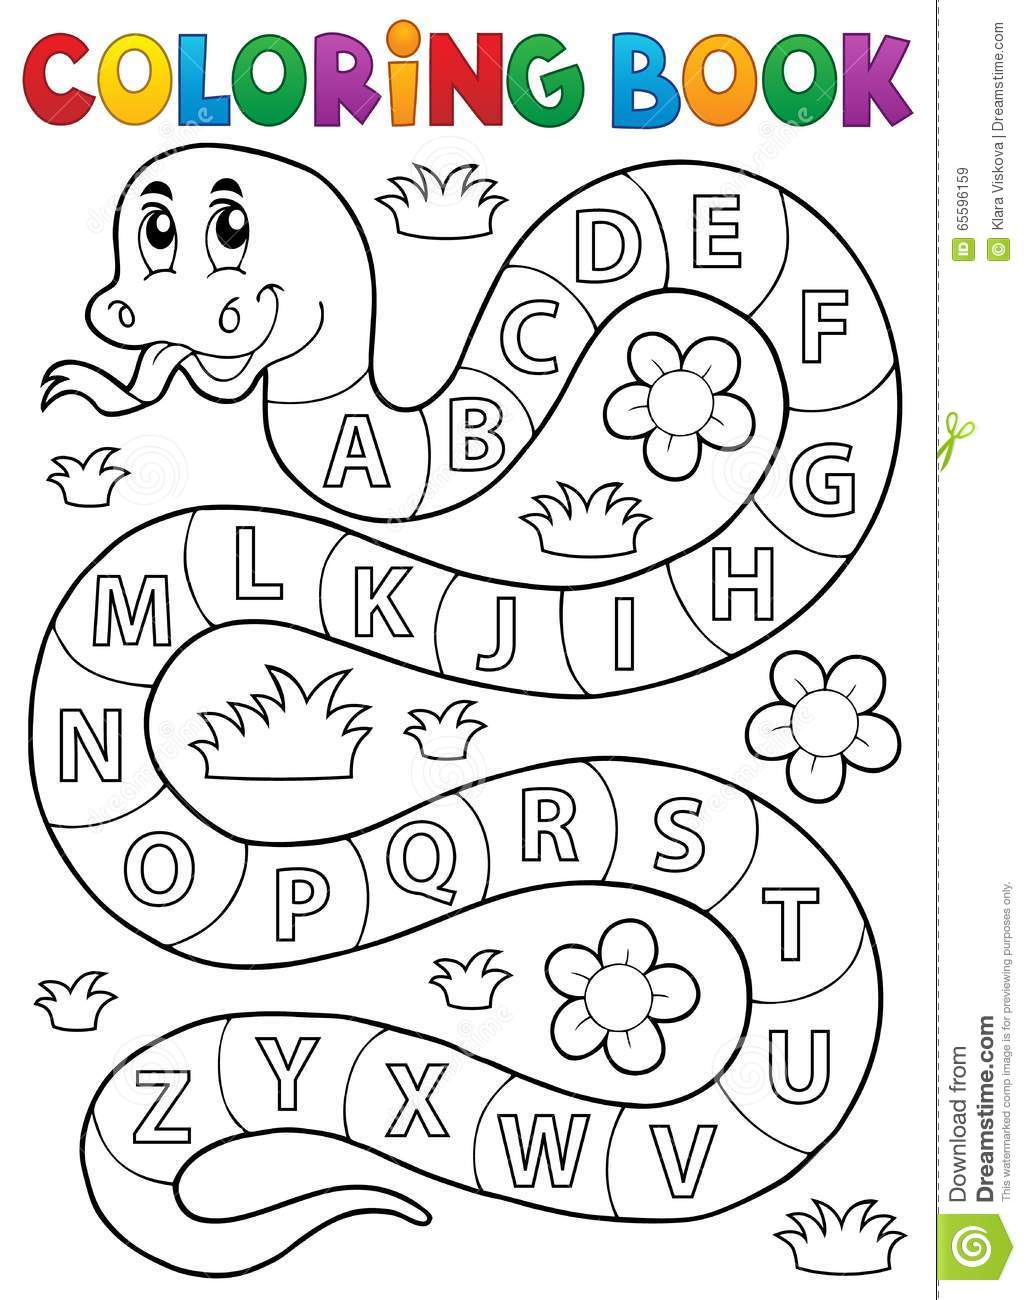 Coloring Book Snake With Alphabet Theme Stock Vector